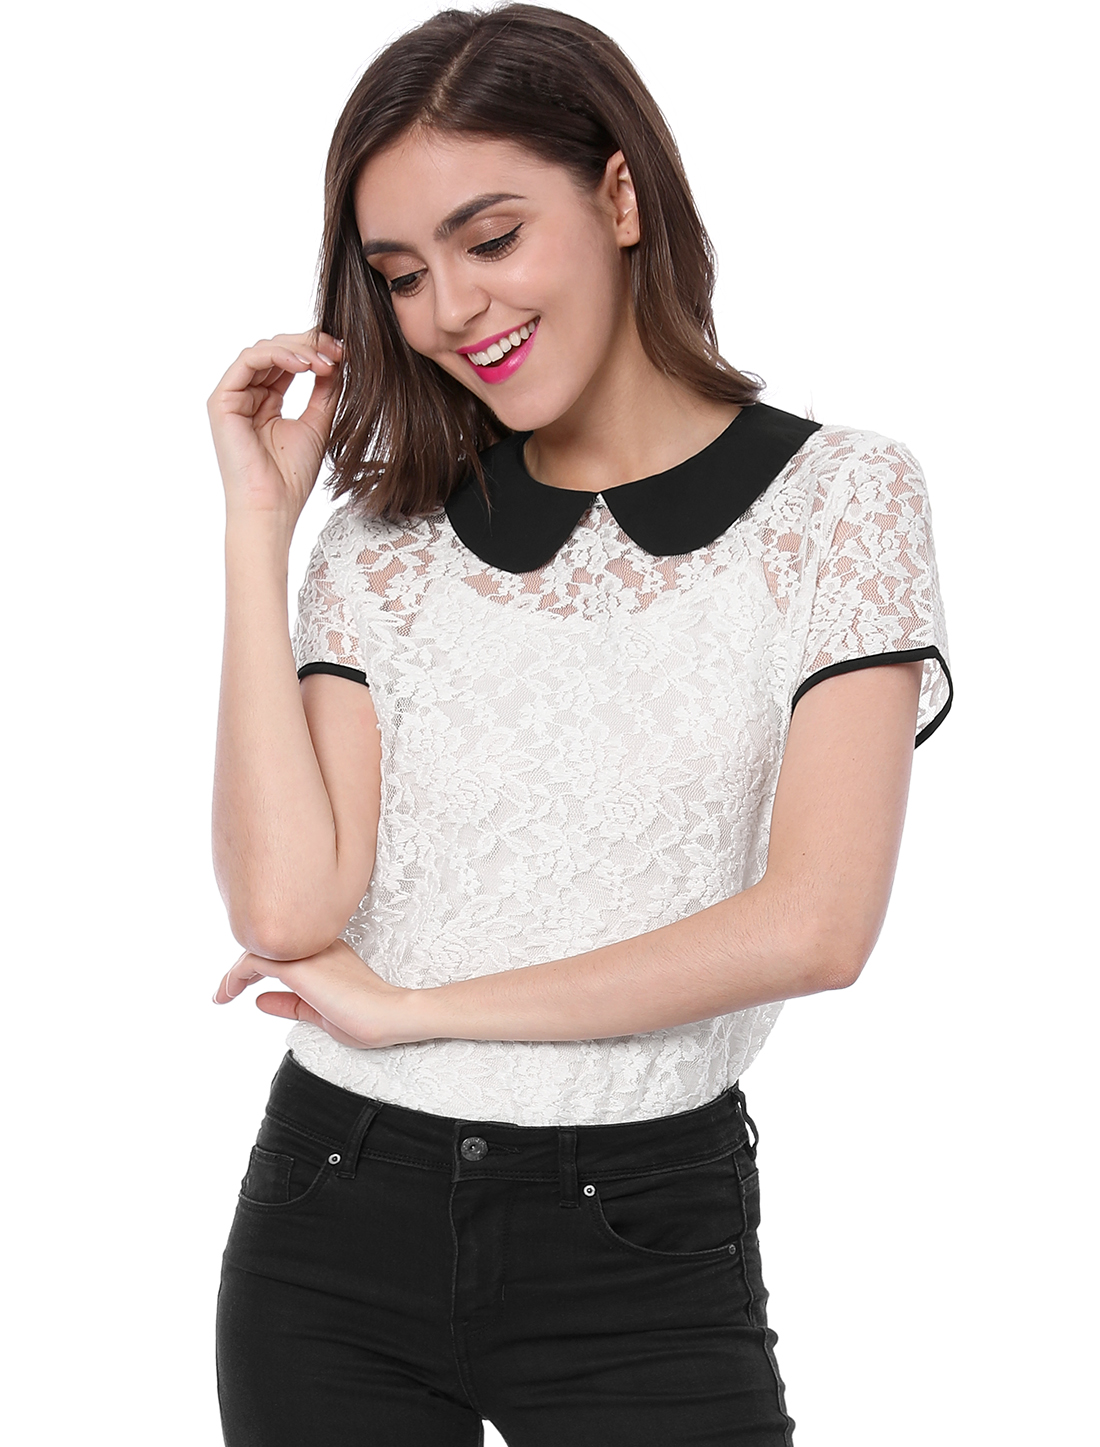 Women See Through Contrast Peter Pan Collar Lace Top White L